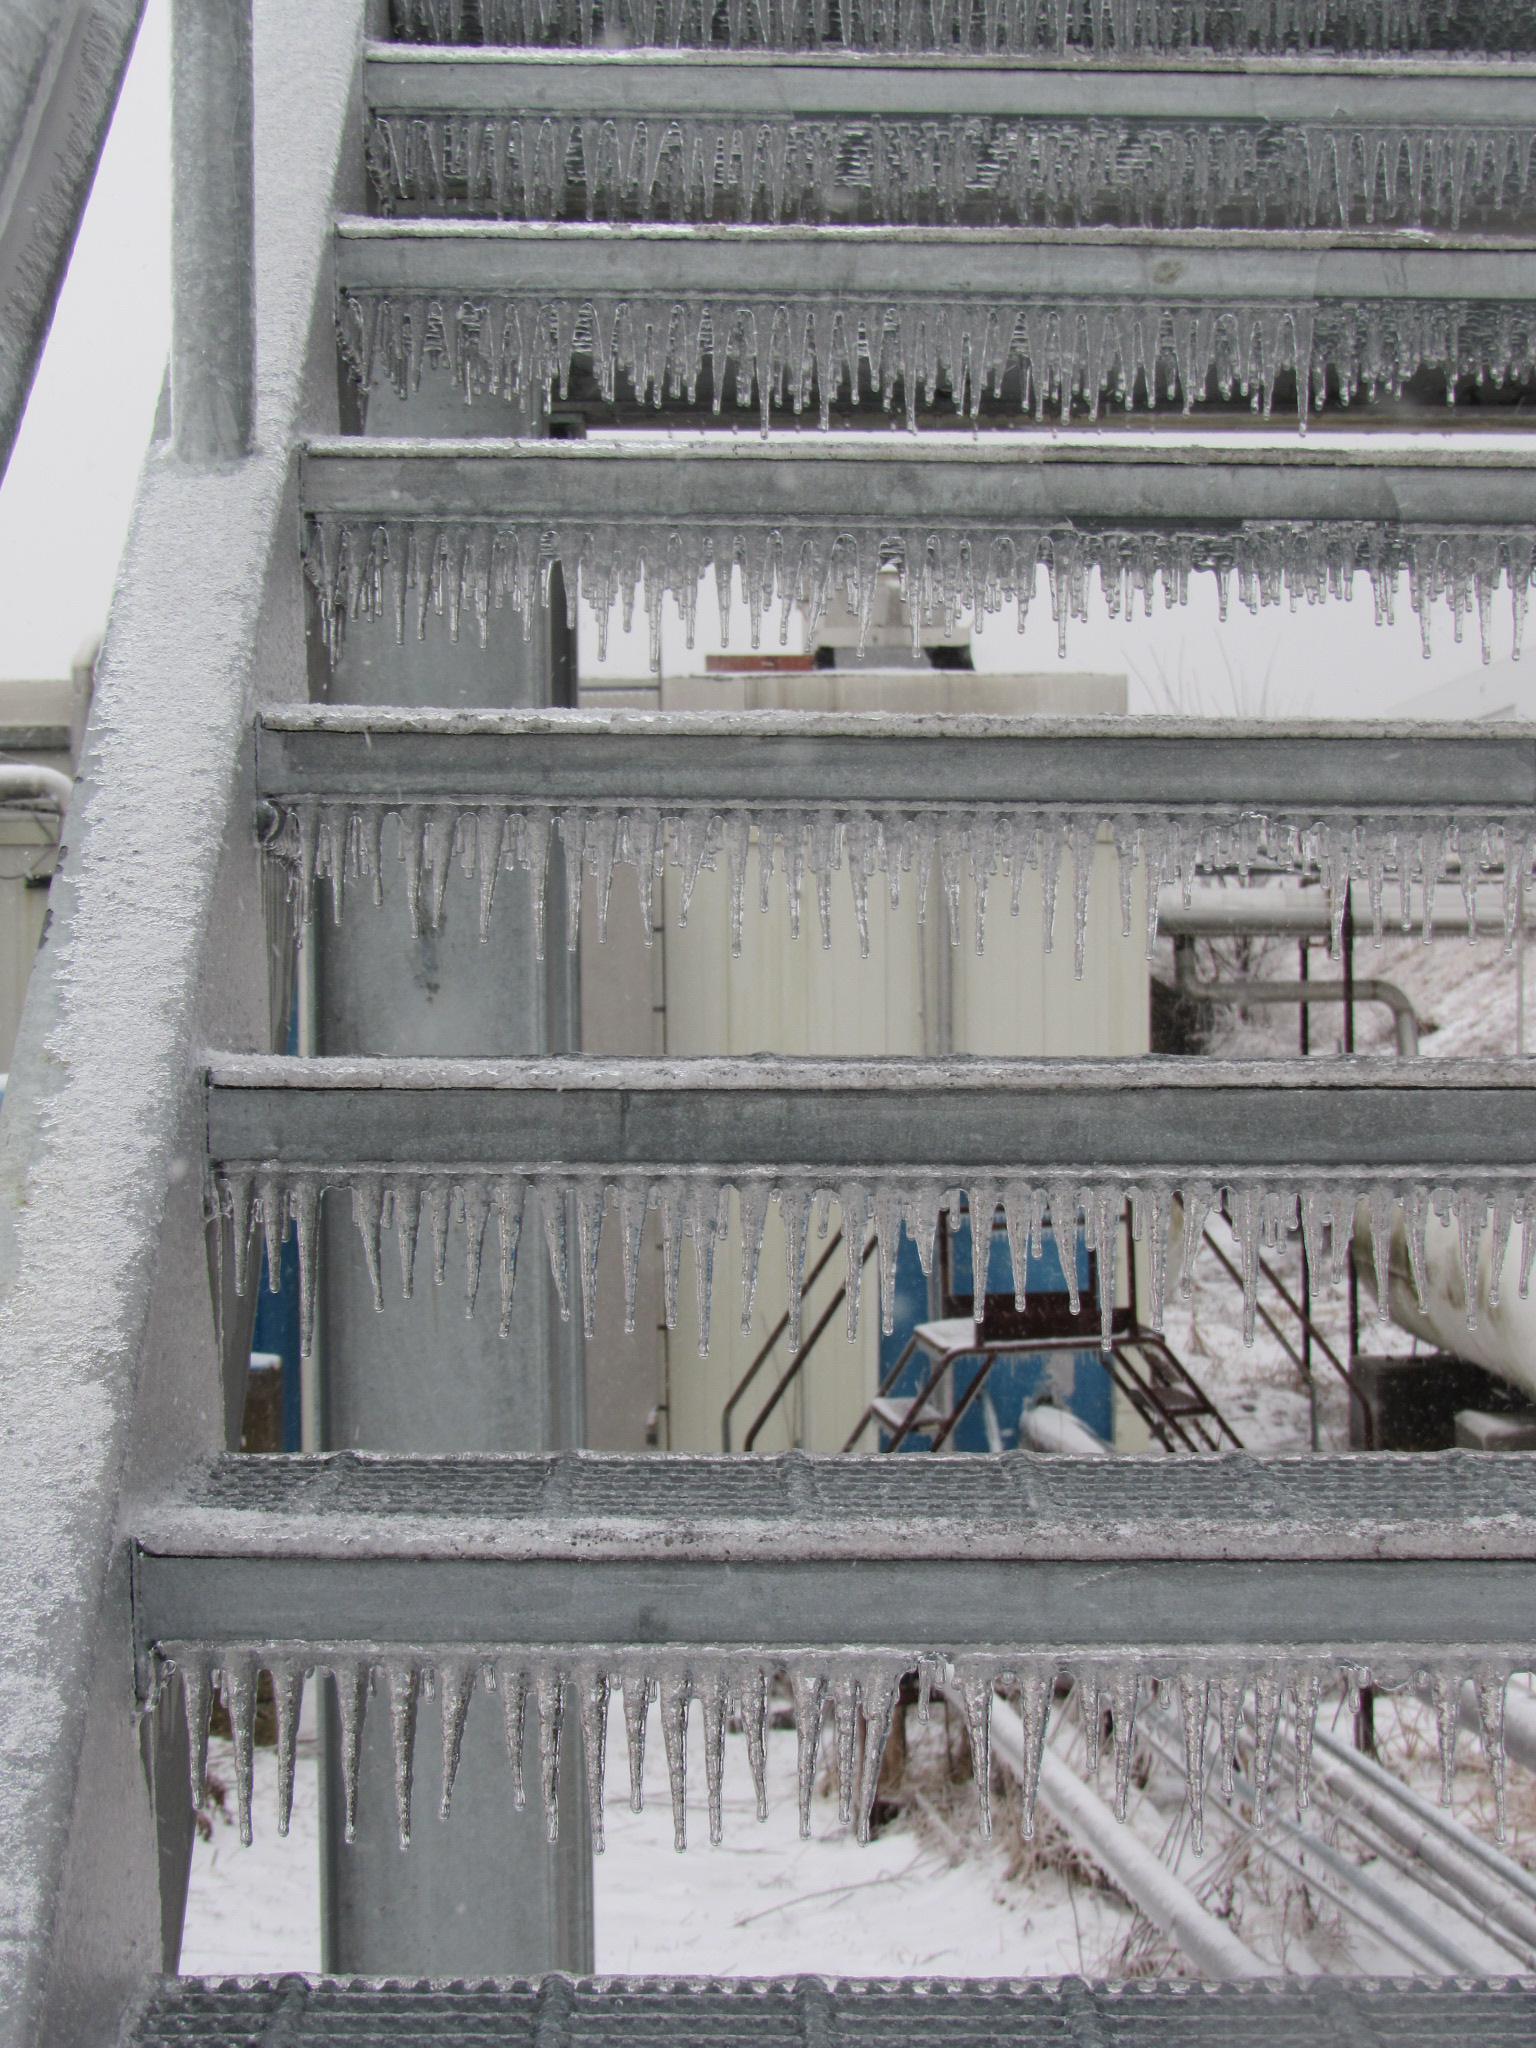 (3/3) Watch for falling icicles from the overpass stairway. winter, ice, everyday objects Photo: Luciano Elementi